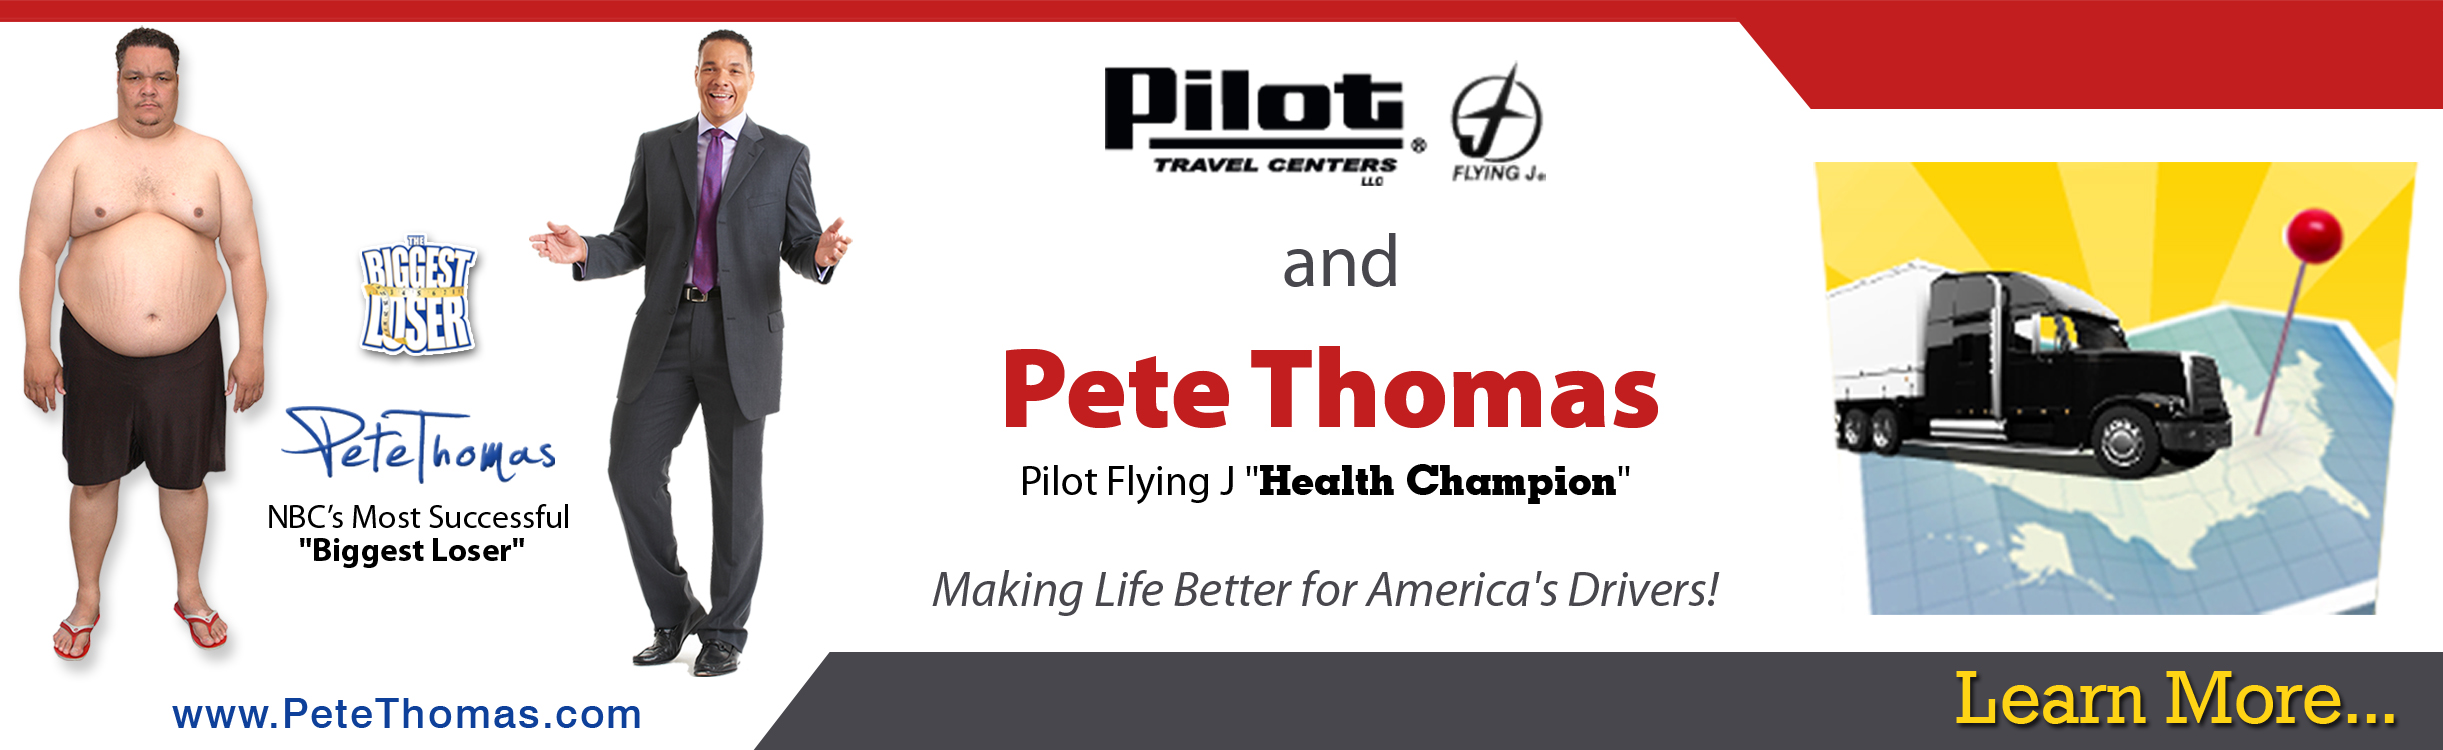 pete_thomas_partnership